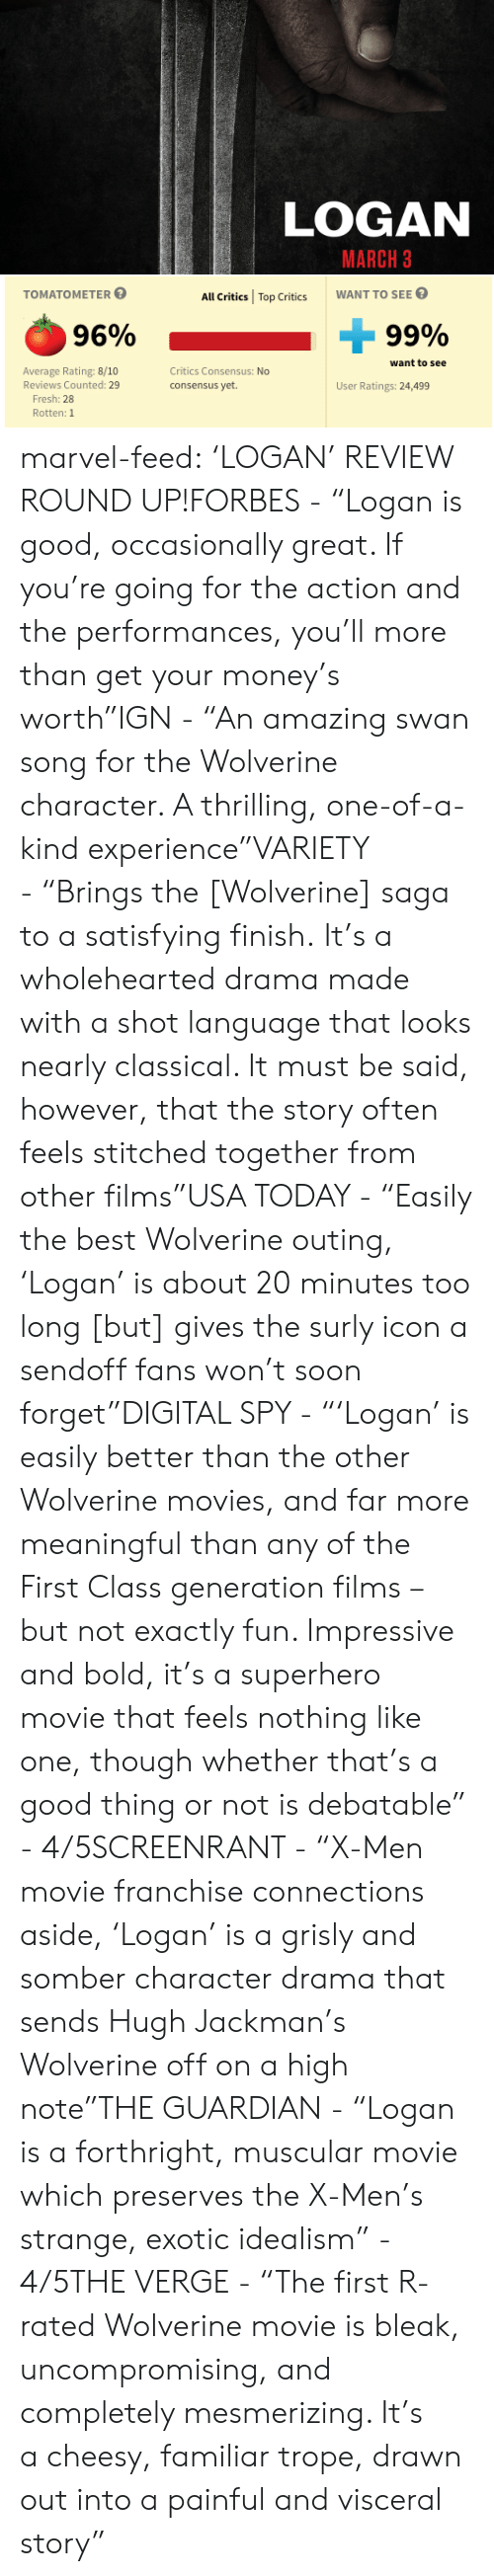 "Fresh, Money, and Movies: LOGAN  MARCH 3   ТОMАТОMЕТER  WANT TO SEE  All Critics  Top Critics  99%  96%  want to see  Average Rating: 8/10  Reviews Counted: 29  Critics Consensus: No  consensus yet.  User Ratings: 24,499  Fresh: 28  Rotten: 1 marvel-feed:  'LOGAN' REVIEW ROUND UP!FORBES - ""Logan is good, occasionally great. If you're going for the action and the performances, you'll more than get your money's worth""IGN - ""An amazing swan song for the Wolverine character. A thrilling, one-of-a-kind experience""VARIETY - ""Brings the [Wolverine] saga to a satisfying finish. It's a wholehearted drama made with a shot language that looks nearly classical. It must be said, however, that the story often feels stitched together from other films""USA TODAY - ""Easily the best Wolverine outing, 'Logan' is about 20 minutes too long [but] gives the surly icon a sendoff fans won't soon forget""DIGITAL SPY - ""'Logan' is easily better than the other Wolverine movies, and far more meaningful than any of the First Class generation films – but not exactly fun. Impressive and bold, it's a superhero movie that feels nothing like one, though whether that's a good thing or not is debatable"" - 4/5SCREENRANT - ""X-Men movie franchise connections aside, 'Logan' is a grisly and somber character drama that sends Hugh Jackman's Wolverine off on a high note""THE GUARDIAN - ""Logan is a forthright, muscular movie which preserves the X-Men's strange, exotic idealism"" - 4/5THE VERGE - ""The first R-rated Wolverine movie is bleak, uncompromising, and completely mesmerizing. It's a cheesy, familiar trope, drawn out into a painful and visceral story"""